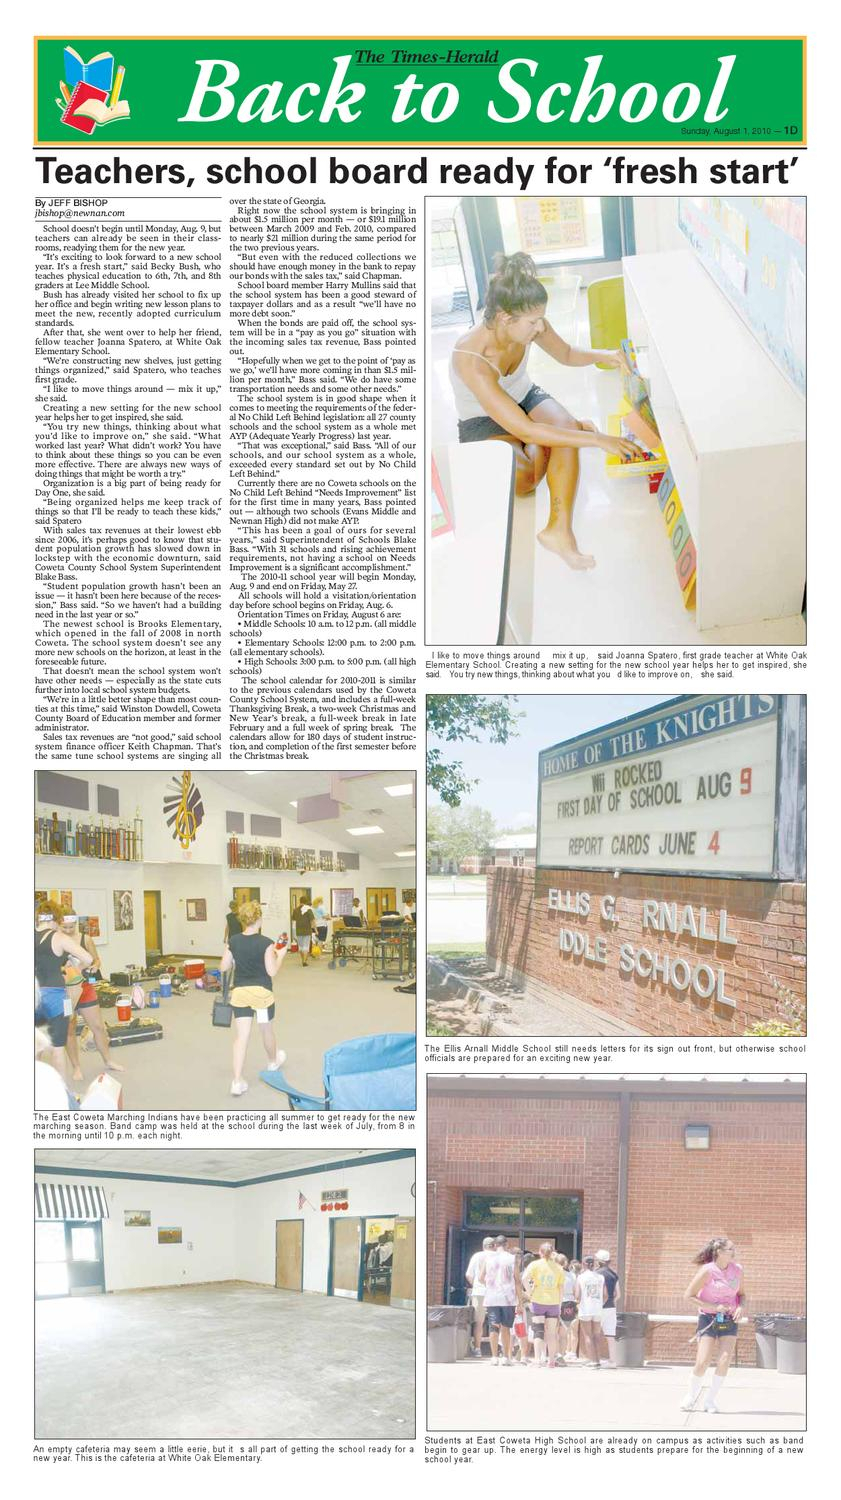 Back To School 2010 By The Timesherald  Issuu regarding Coweta County School Calendar